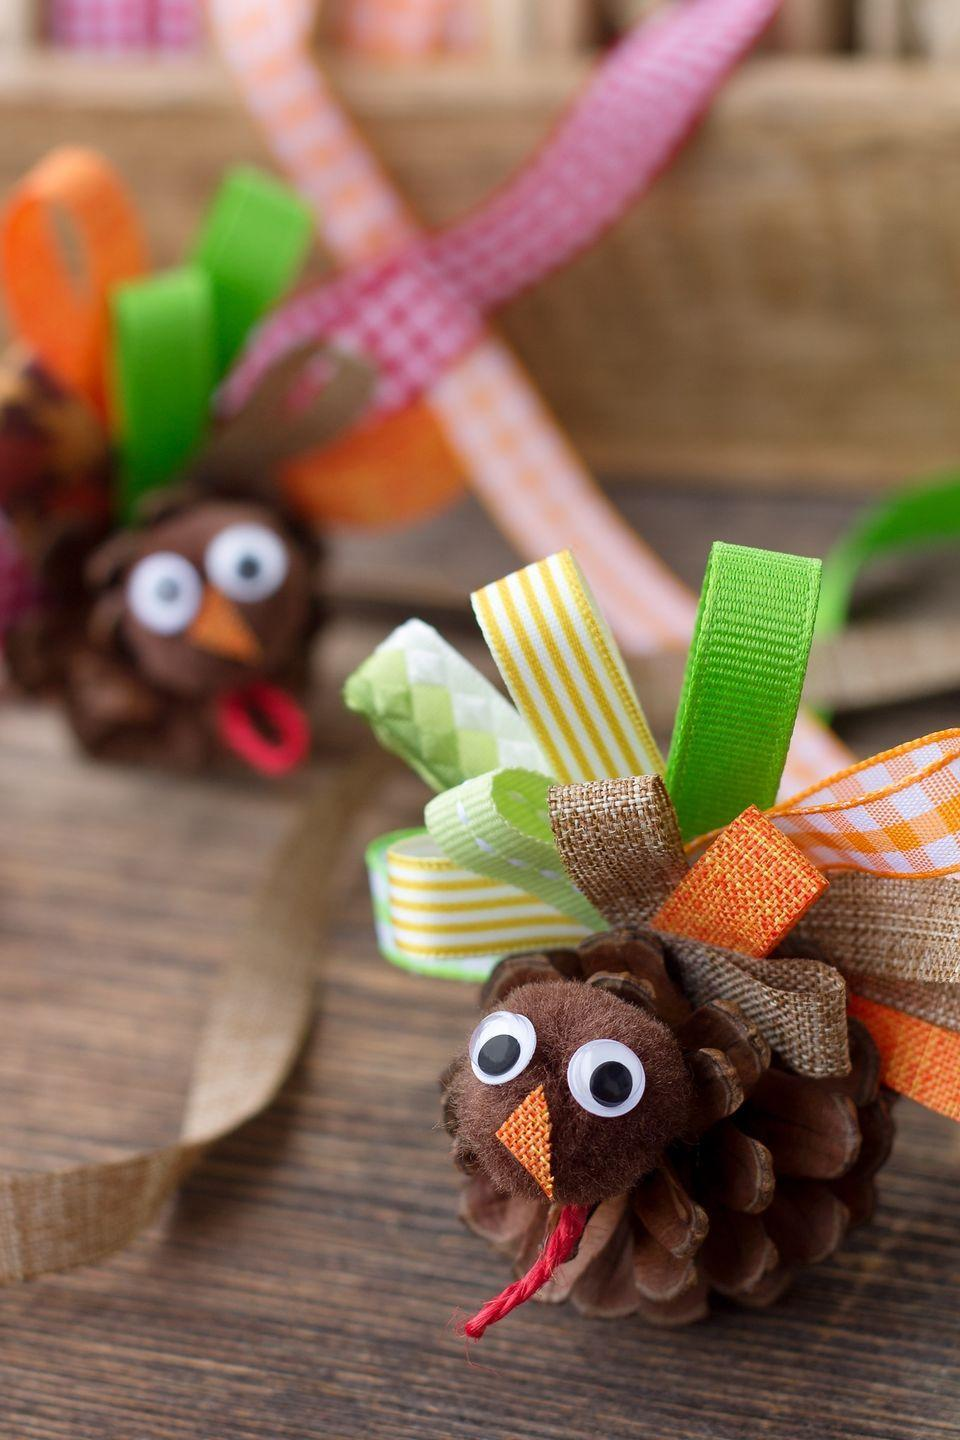 "<p>Use ribbon and any pine cones you find in your yard to make these sweet turkeys that can be used for place card holders.</p><p><strong>Get the tutorial at <a href=""https://www.firefliesandmudpies.com/scrap-ribbon-pinecone-turkeys/"" rel=""nofollow noopener"" target=""_blank"" data-ylk=""slk:Fireflies and Mudpies"" class=""link rapid-noclick-resp"">Fireflies and Mudpies</a>.</strong></p><p><strong><a class=""link rapid-noclick-resp"" href=""https://www.amazon.com/BakeBaking-GHRD-Assortment-Decorations-Collection/dp/B0716WC7L9/ref=sr_1_1?tag=syn-yahoo-20&ascsubtag=%5Bartid%7C10050.g.22626432%5Bsrc%7Cyahoo-us"" rel=""nofollow noopener"" target=""_blank"" data-ylk=""slk:SHOP RIBBON"">SHOP RIBBON</a><br></strong></p>"